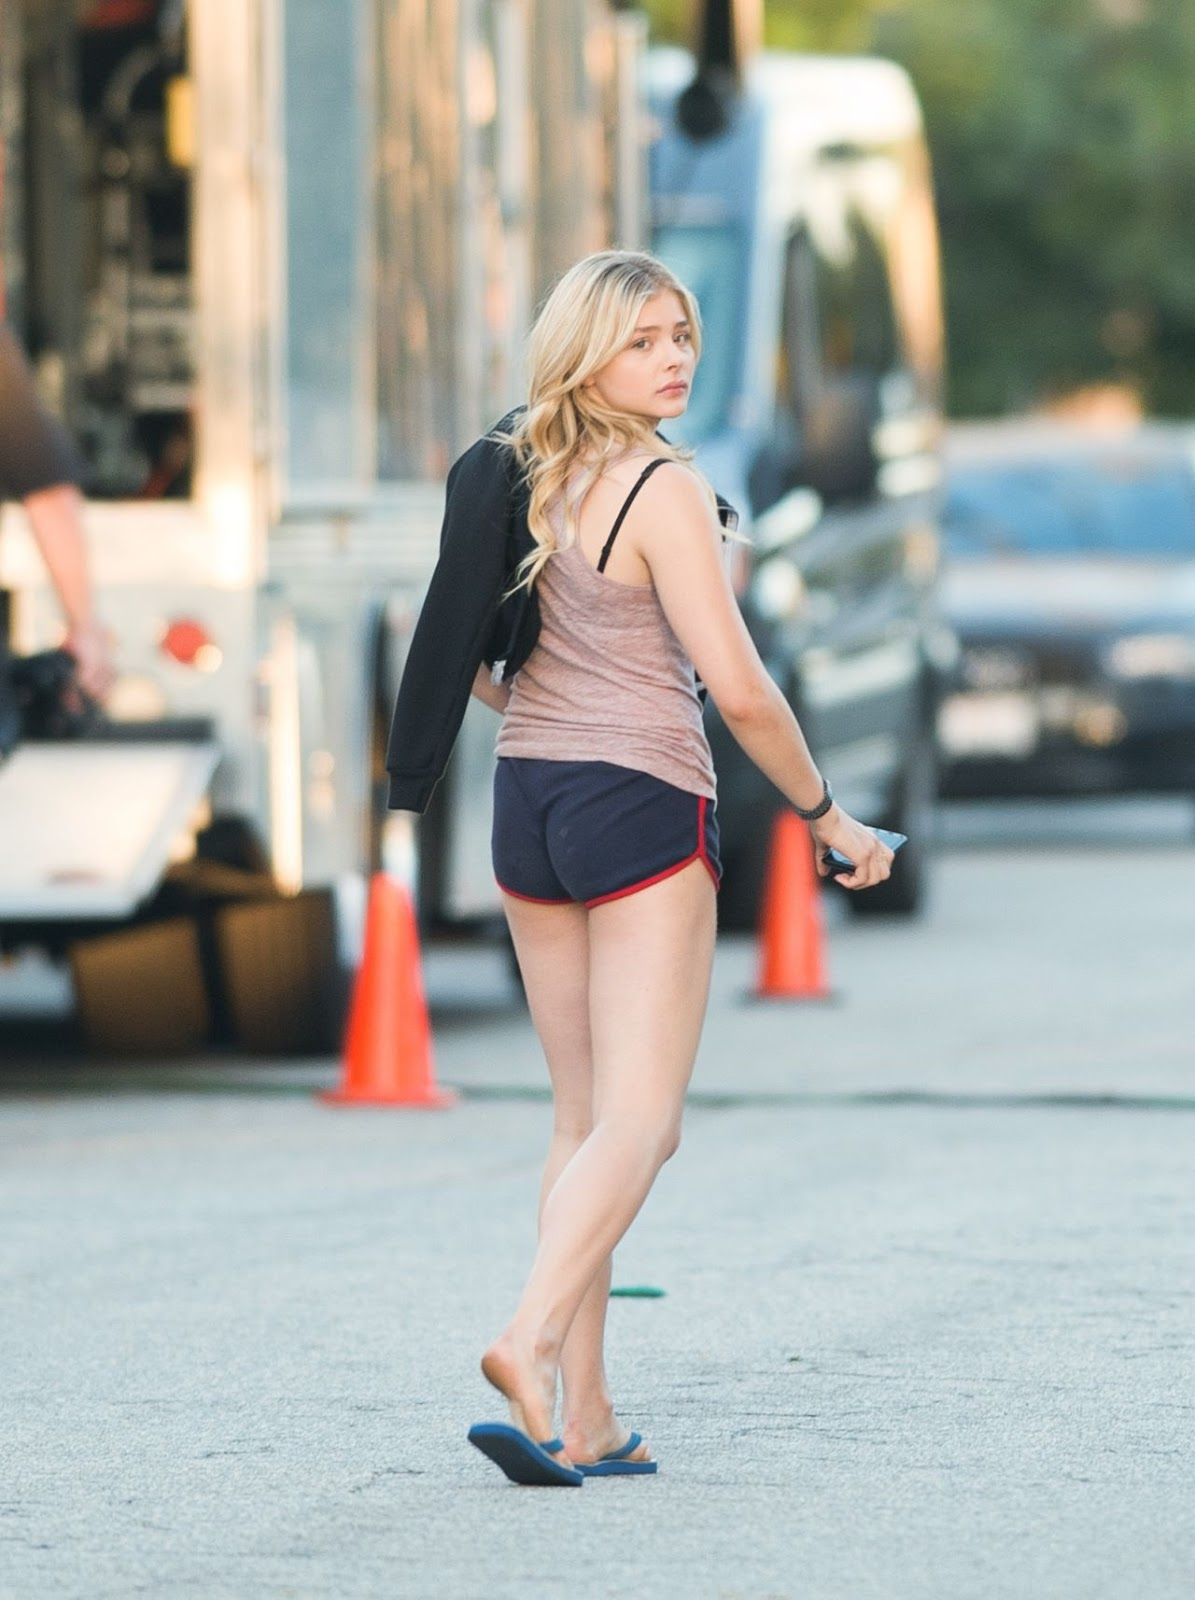 39 Hot Pictures Of Chloe Grace Moretz From Hit-Girl -5054